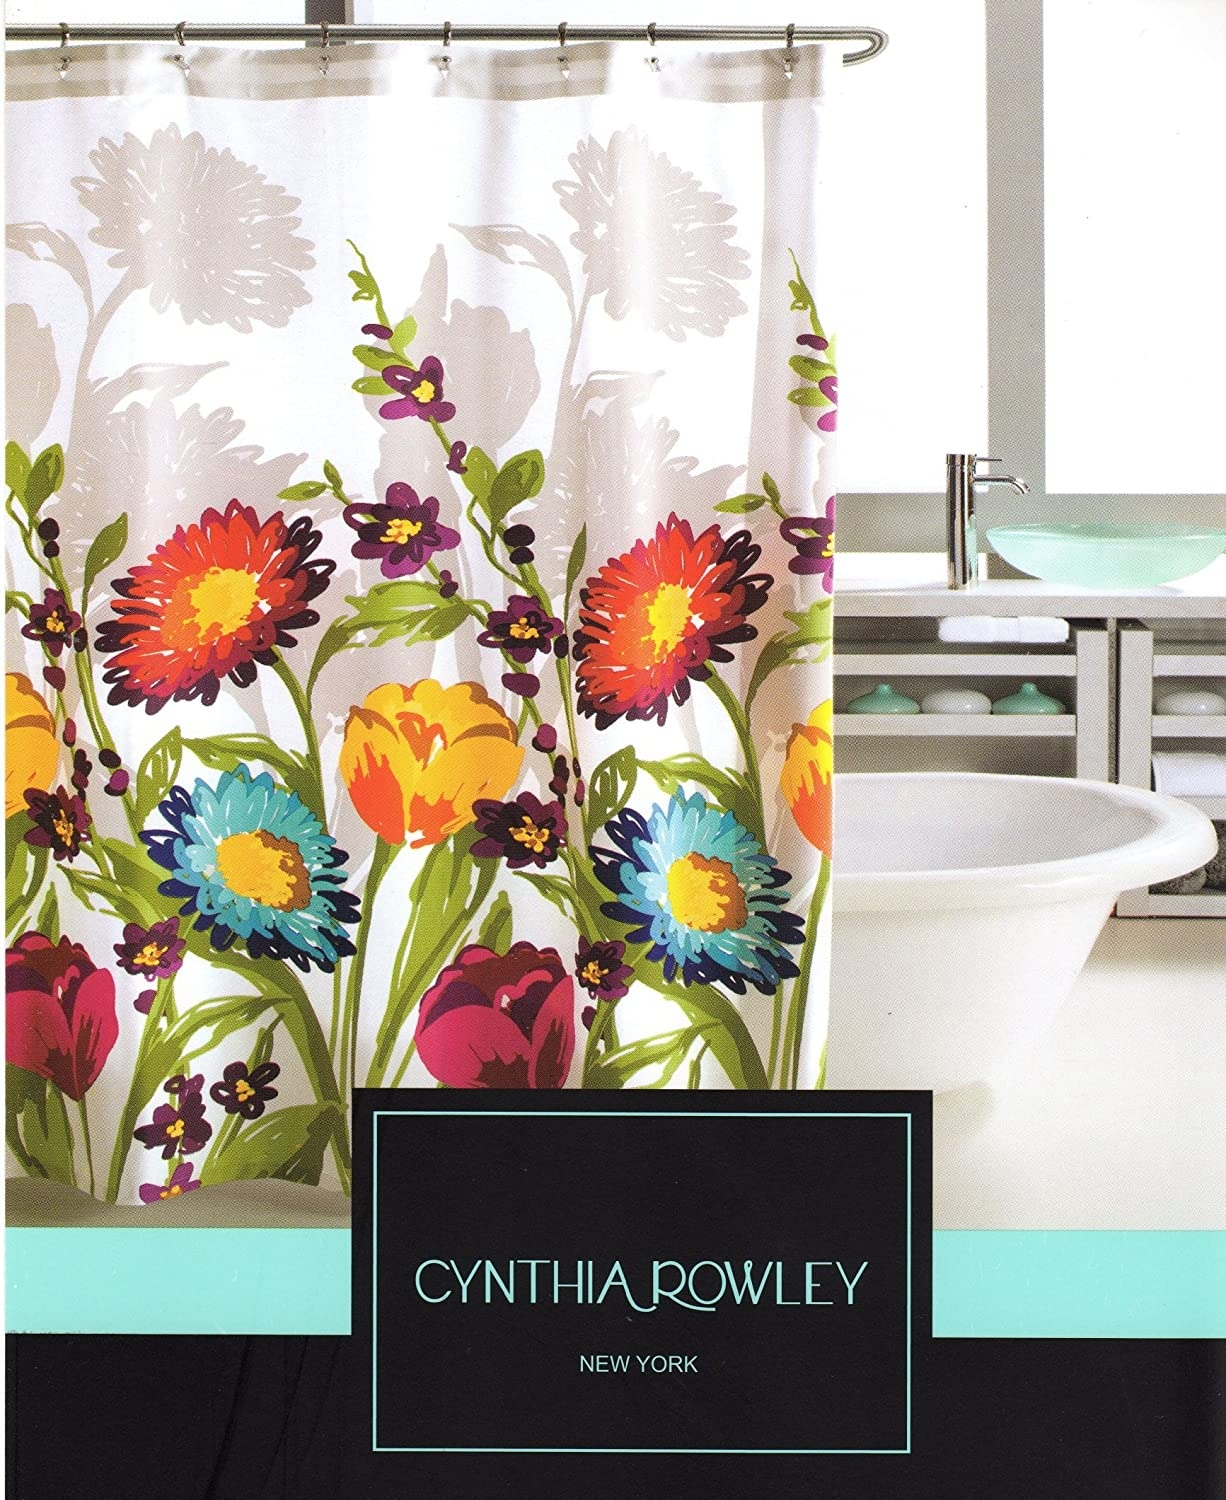 Cynthia Rowley Home Decor You Ll Love In 2021 Visualhunt